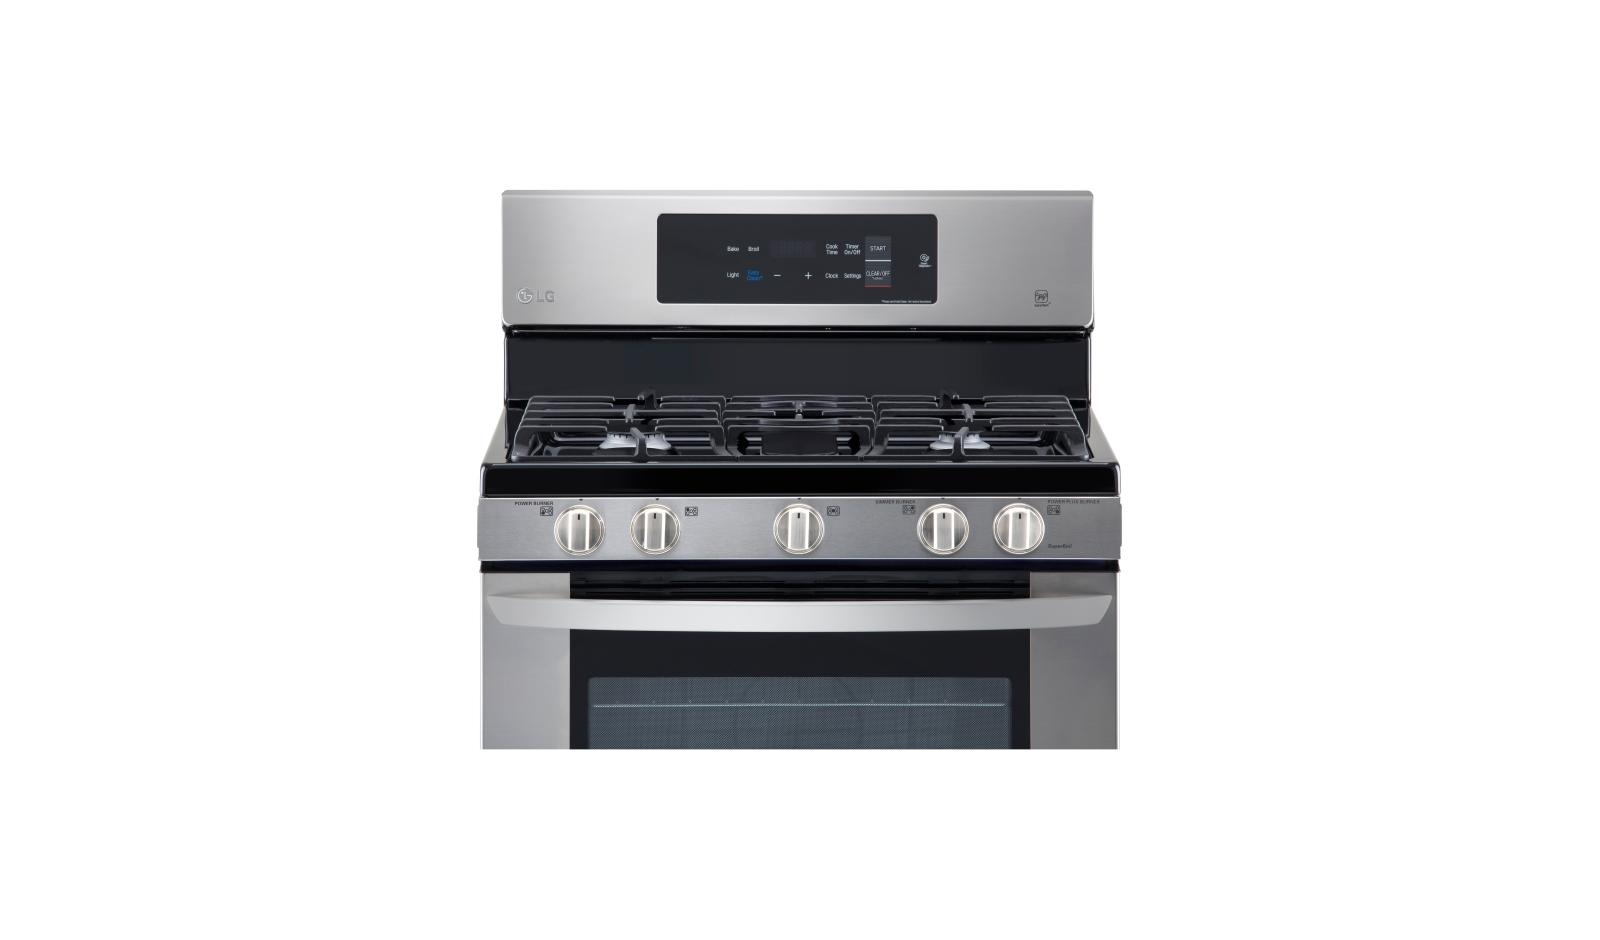 hight resolution of lg lrg3061st save up to 178 00 w black friday sales lg usa lg stove top wiring